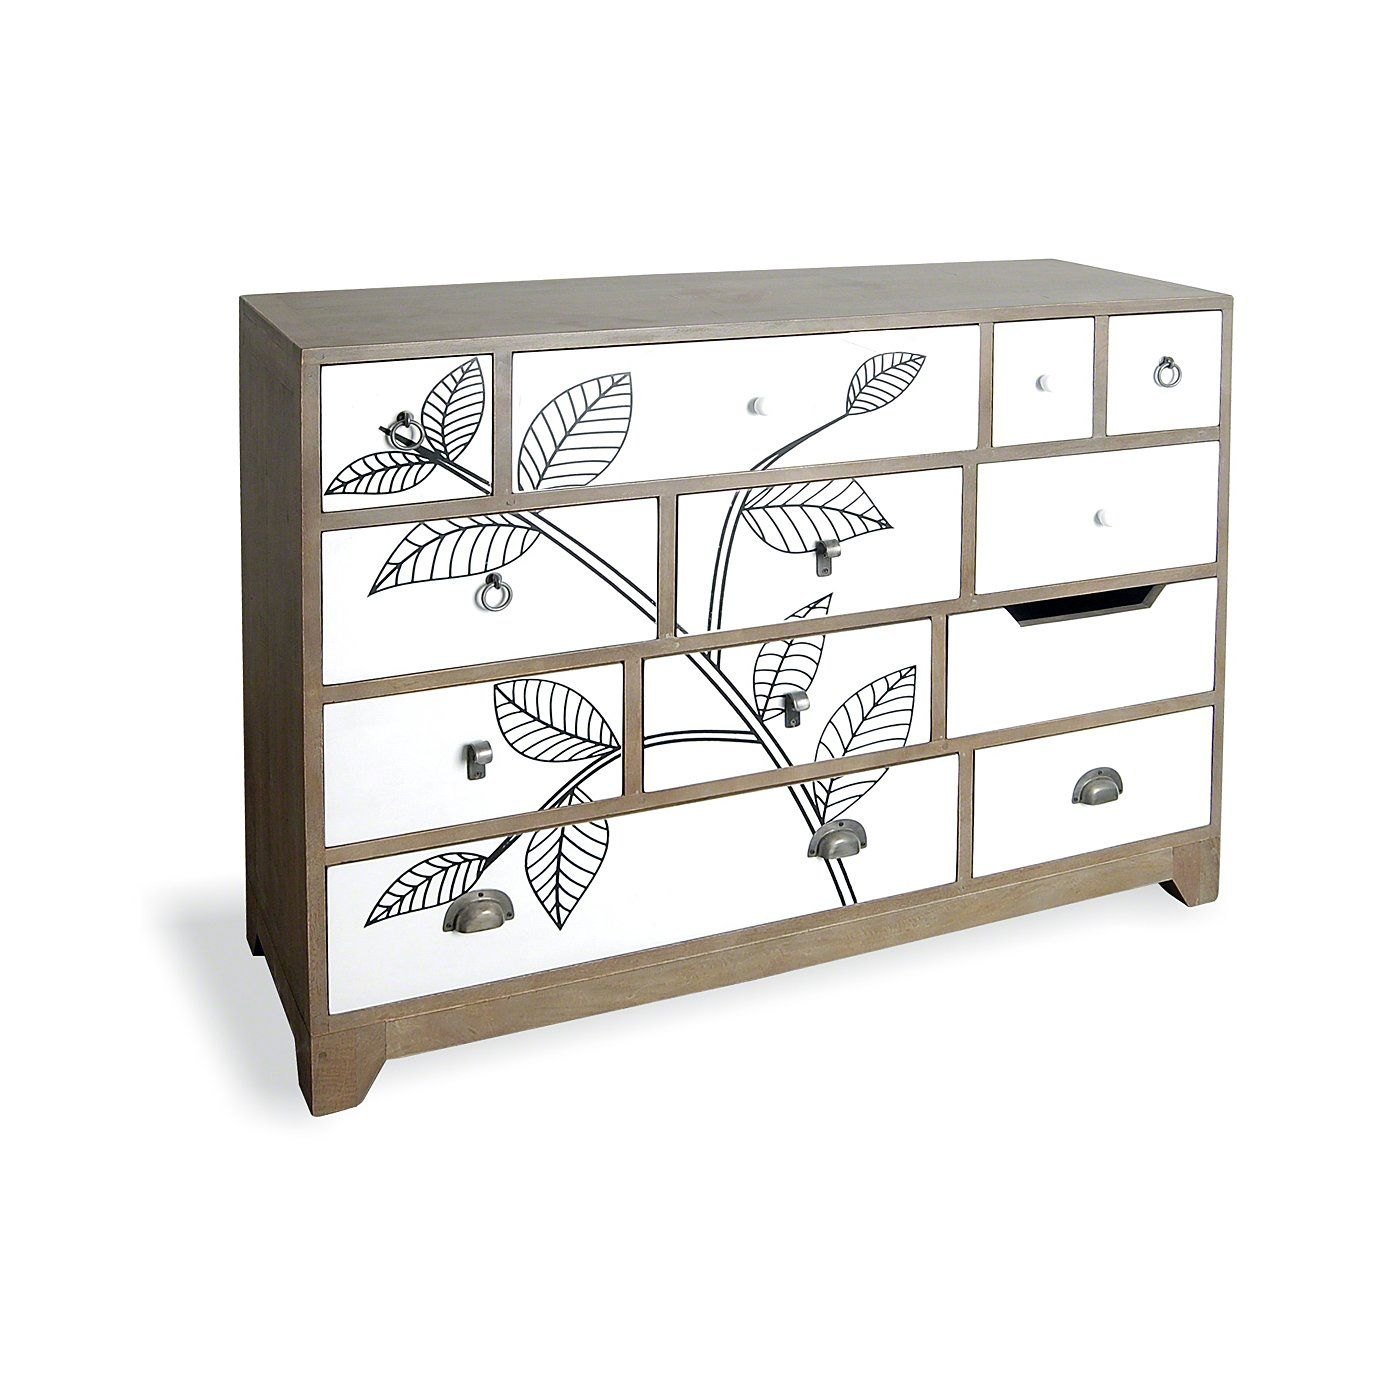 12 Drawer Chest Of Drawers Rye 12 Drawer Chest Of Drawers Leaf Print Sideboards Storage